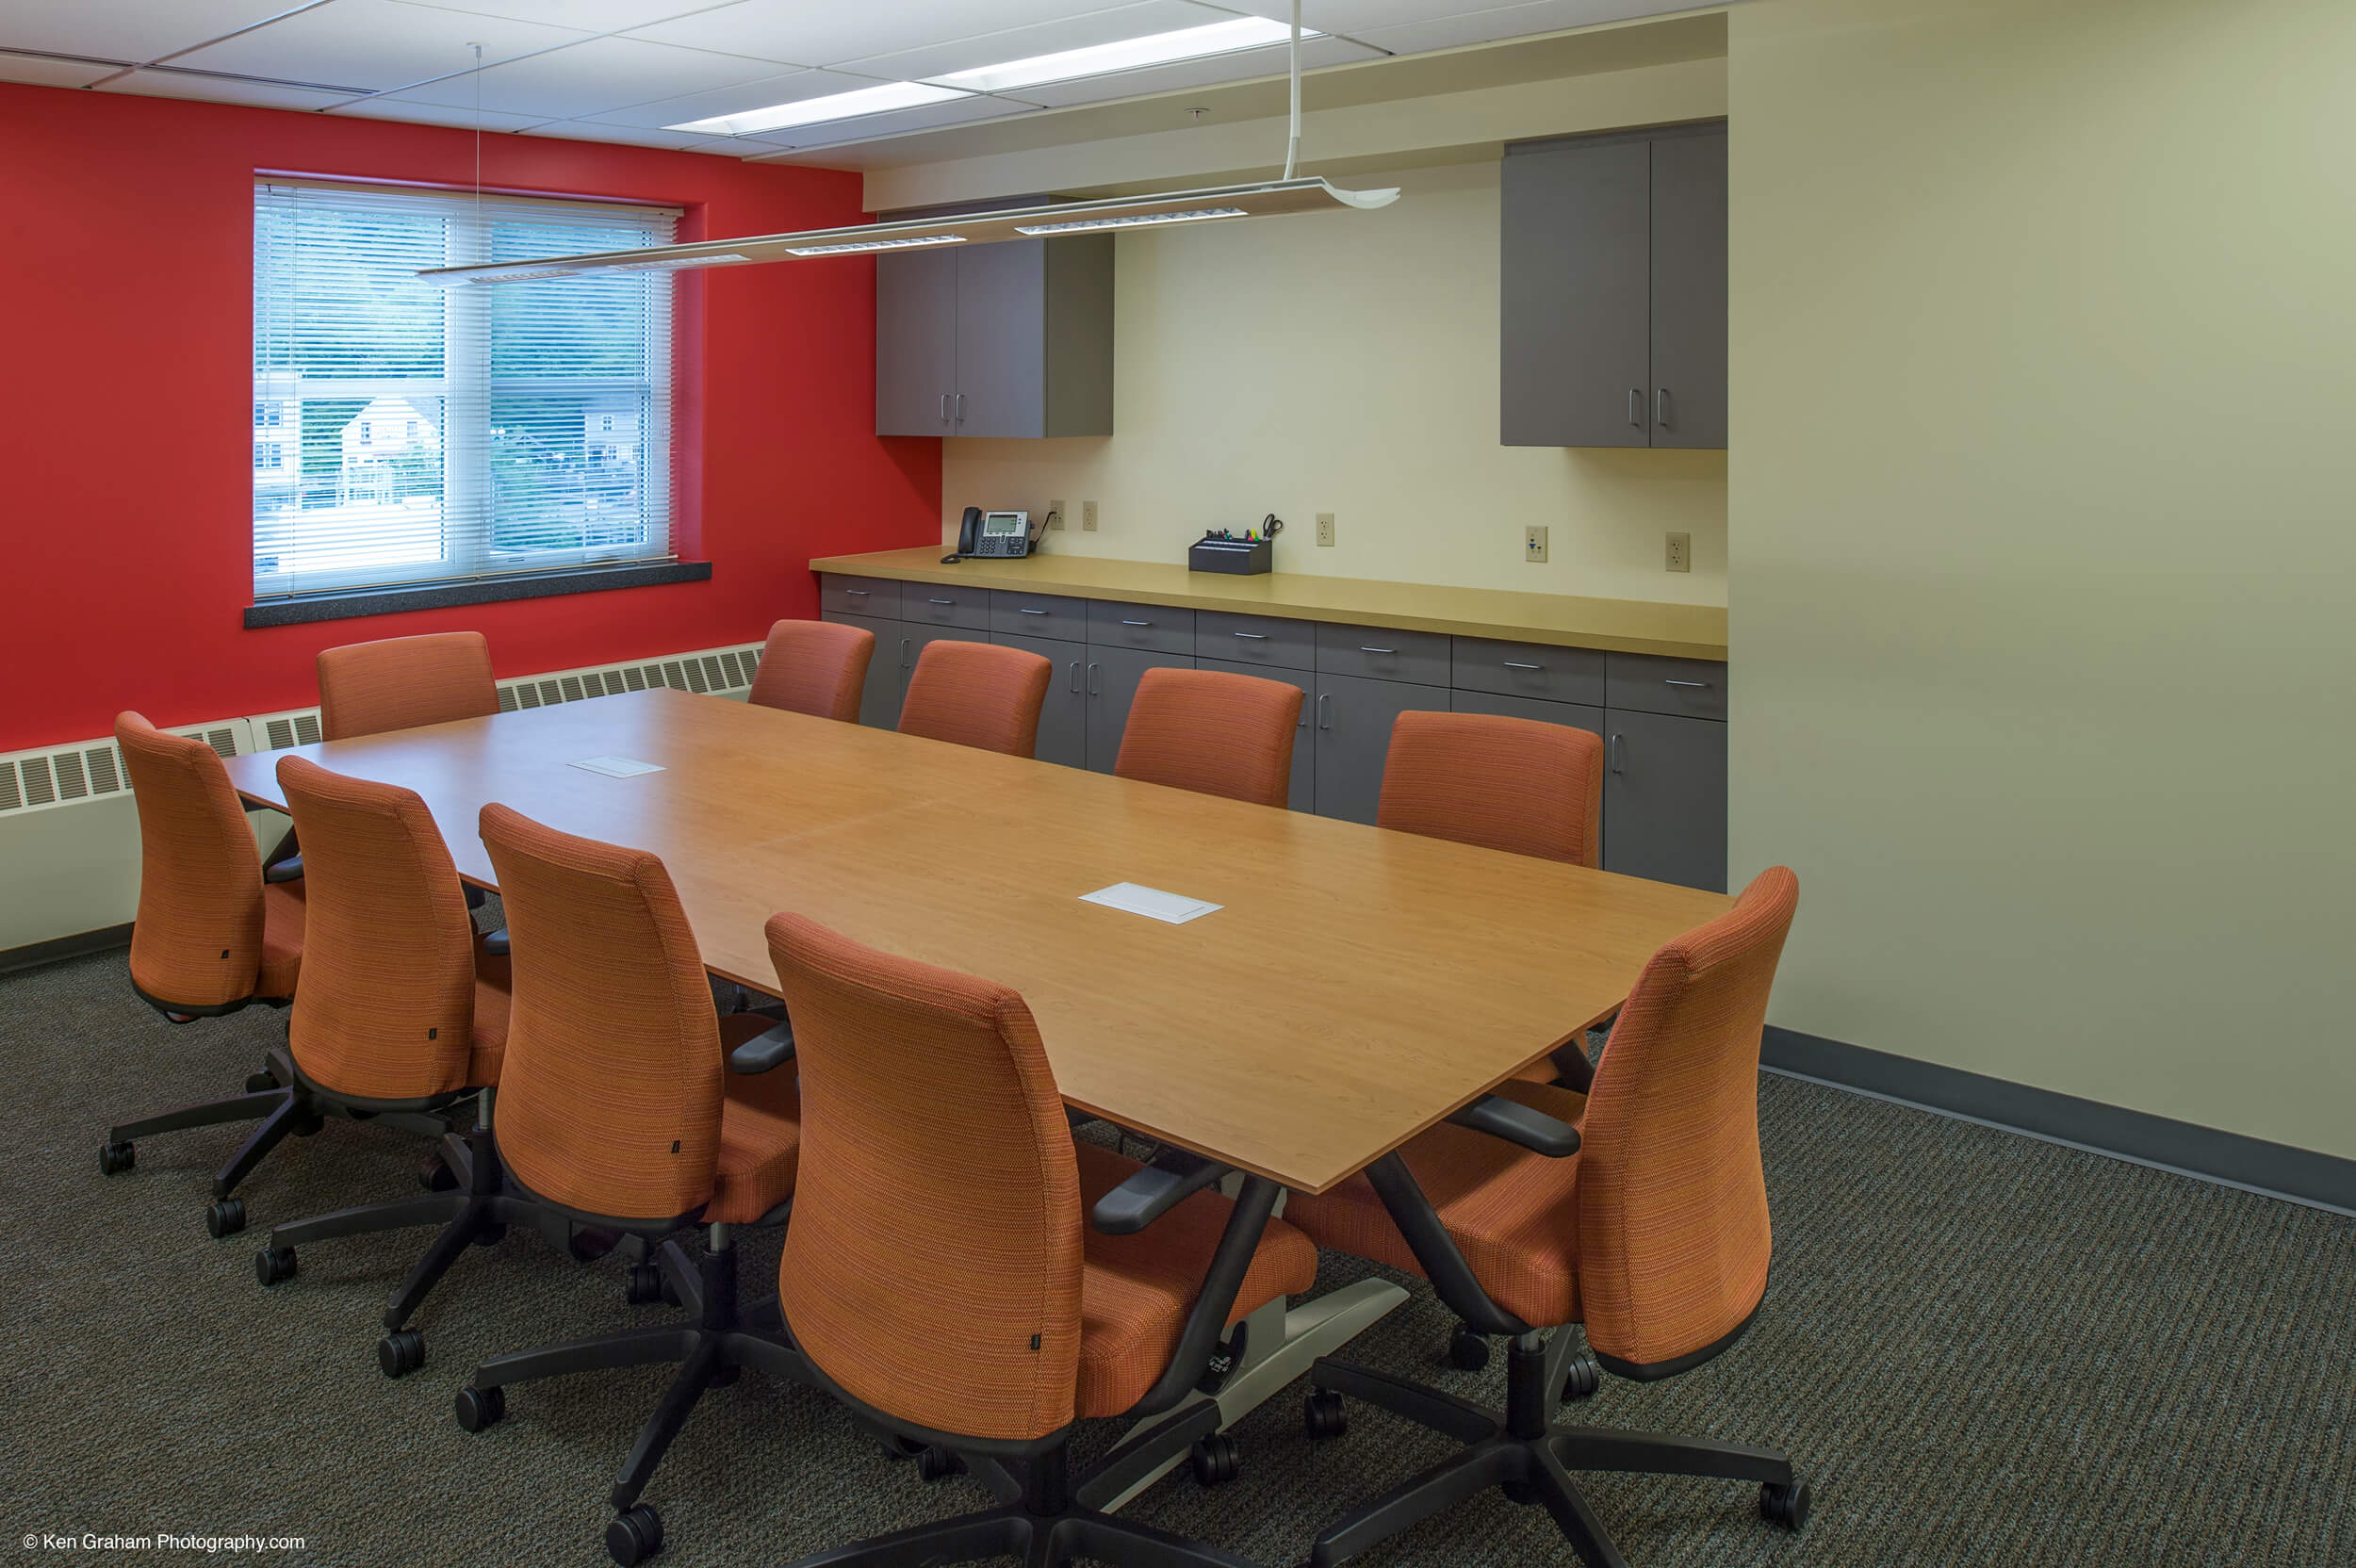 Expand Ketchikan Fire Station No 1 Conference Room